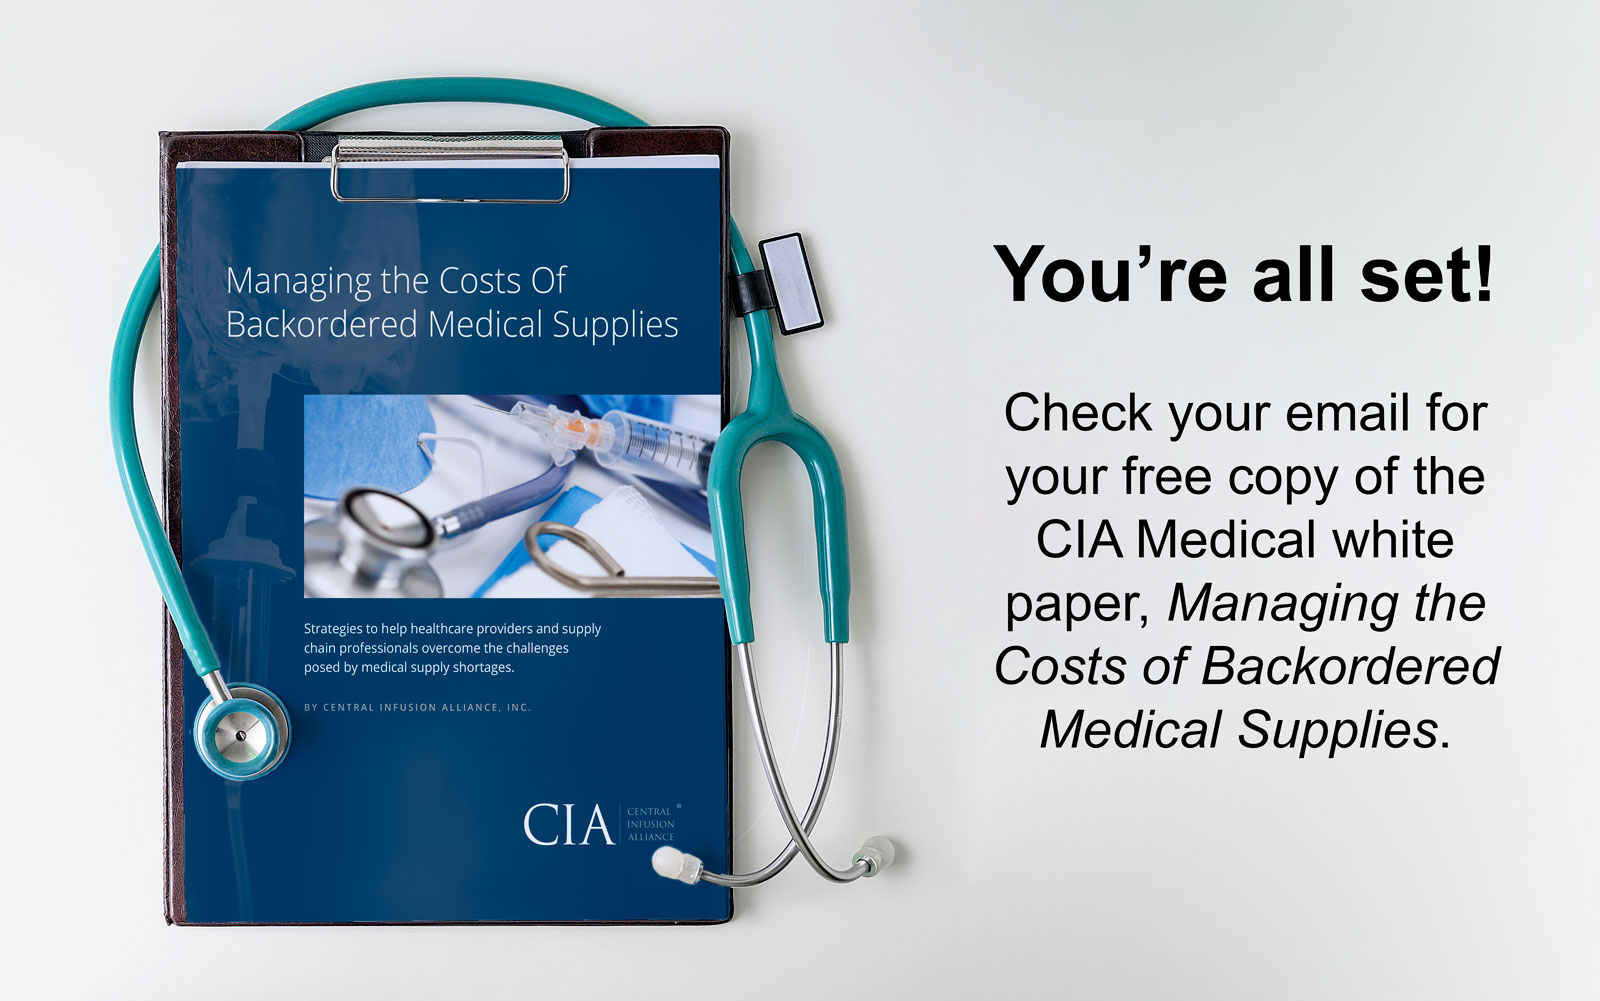 CIA Medical White paper confirmation